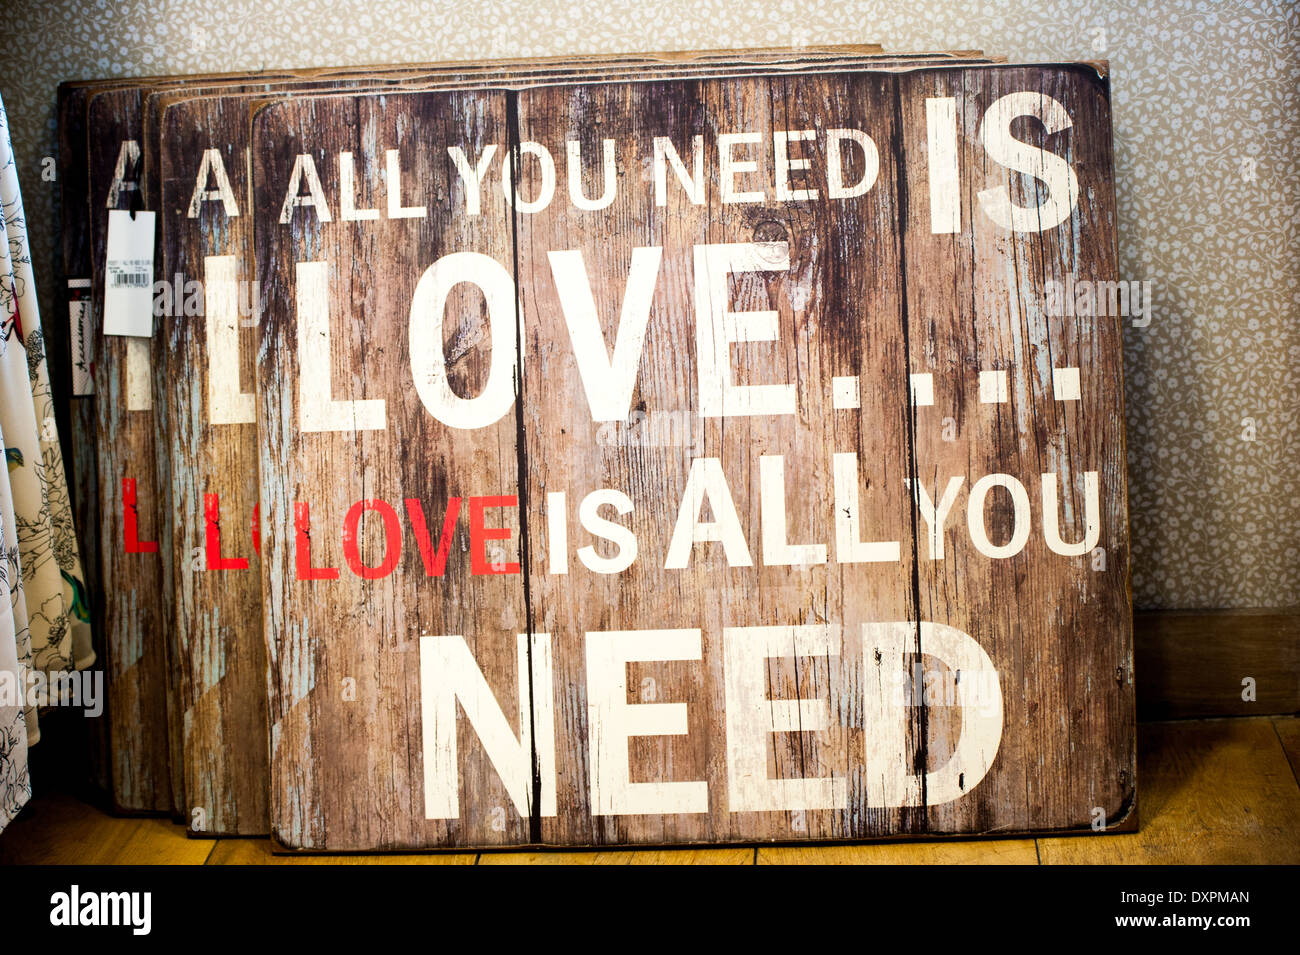 'All you need is love' sign Banque D'Images